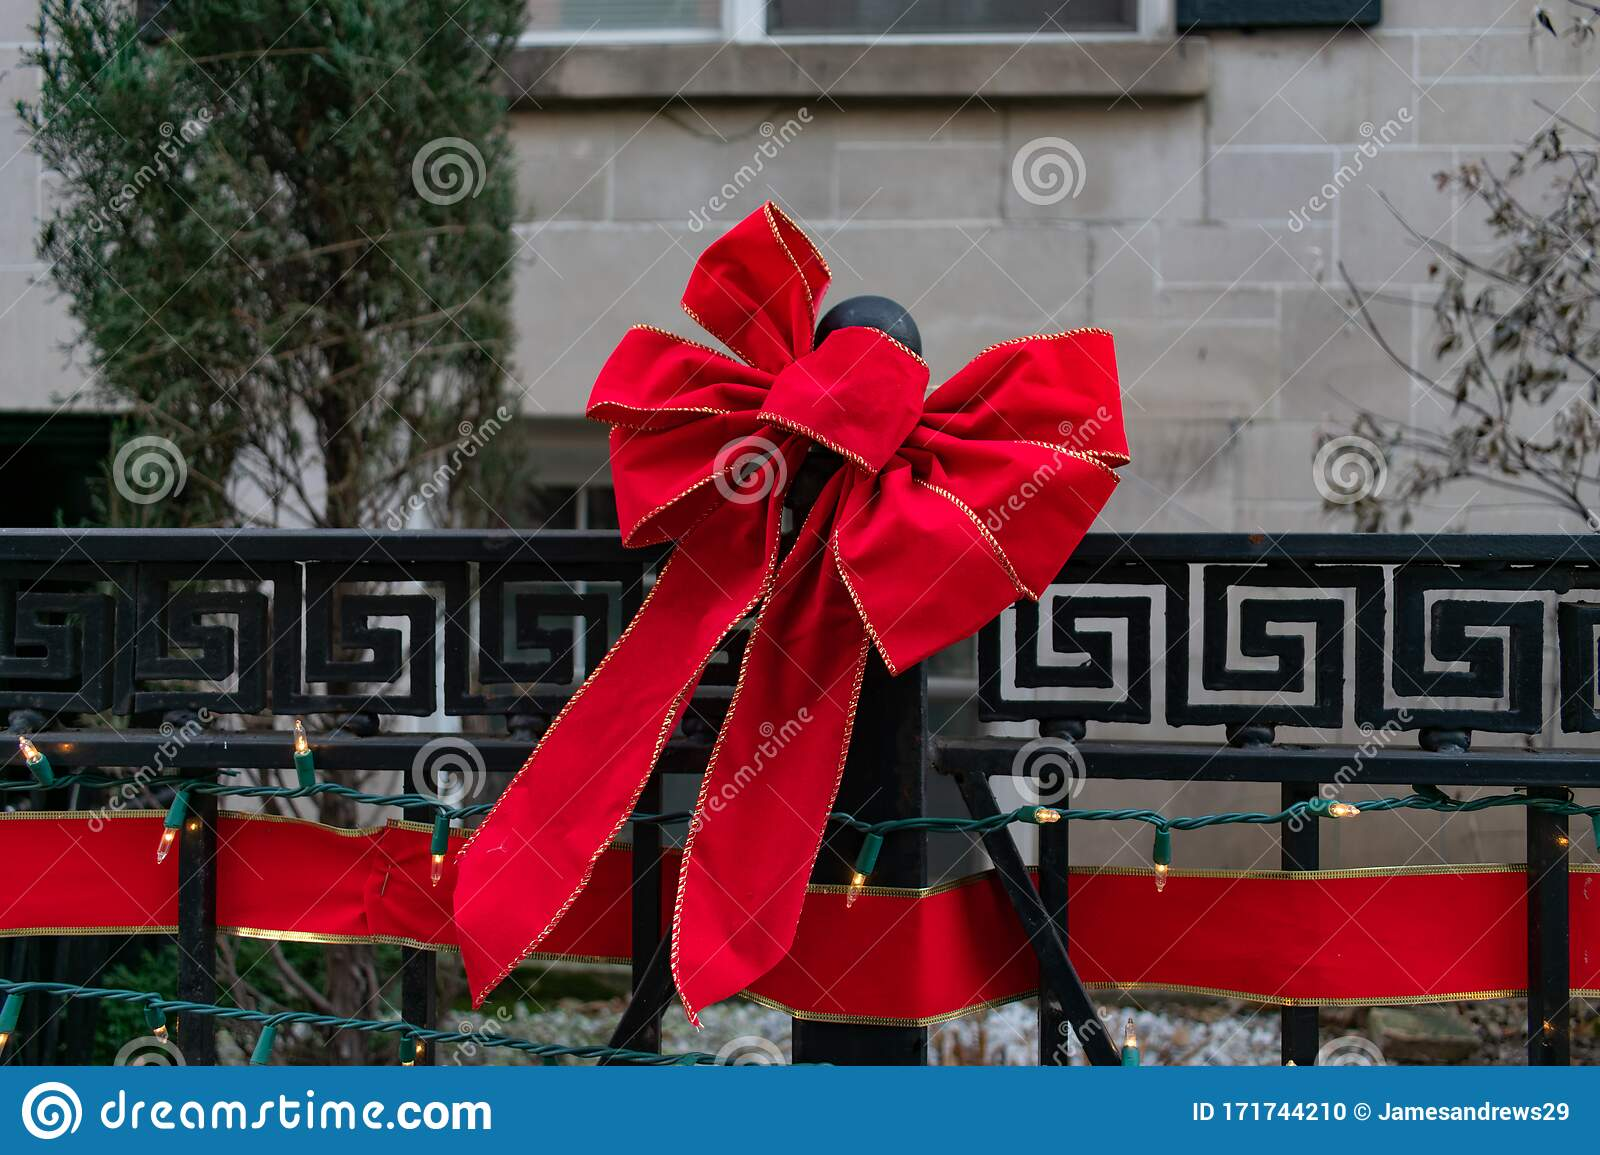 Image of: Red Christmas Bow On An Outdoor Fence Stock Photo Image Of Winter Outdoors 171744210